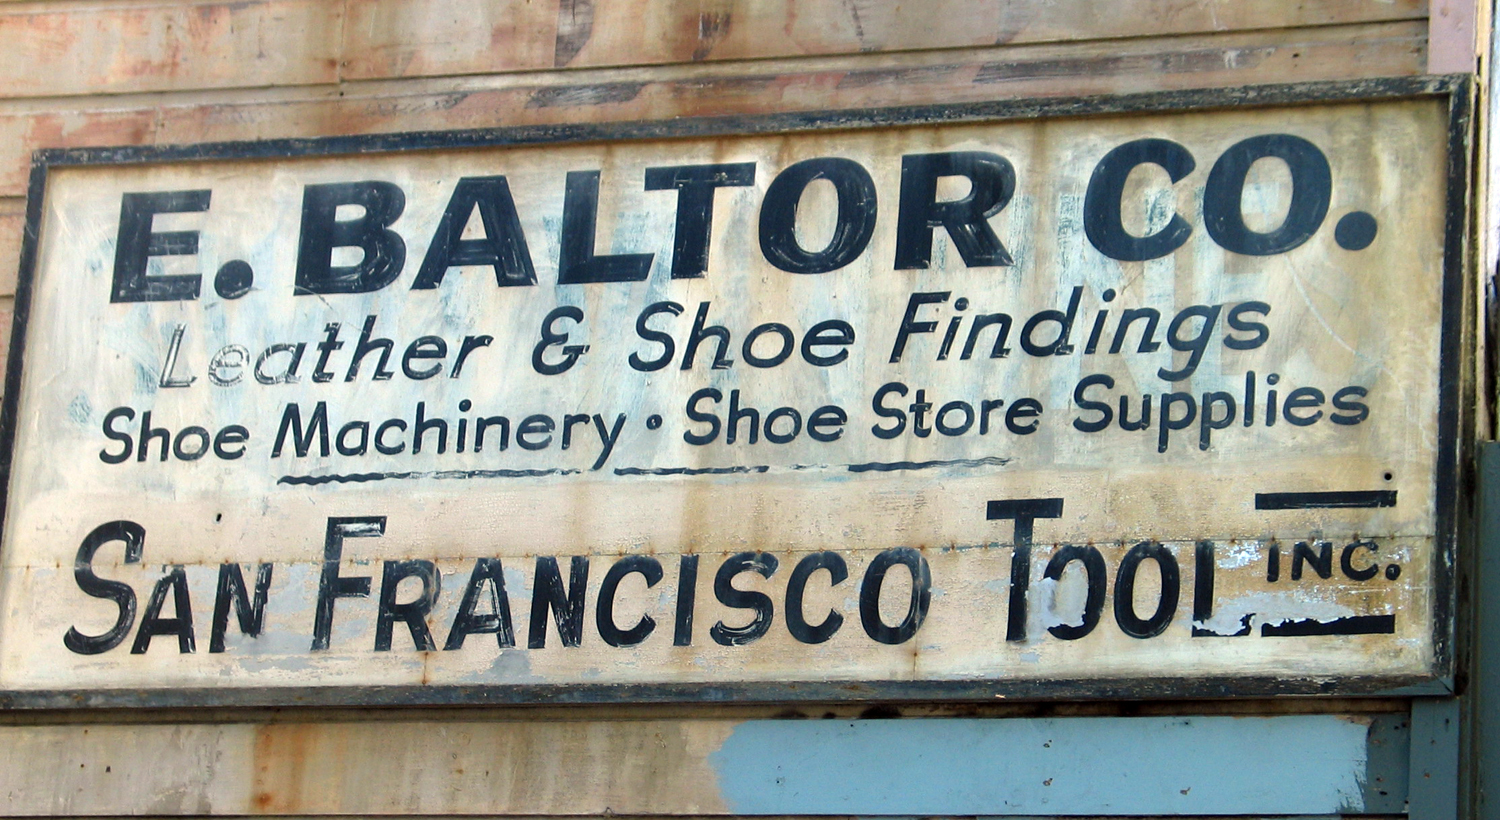 E. Baltor Co.  A sign I found in the Mission District in 2001. No longer there.